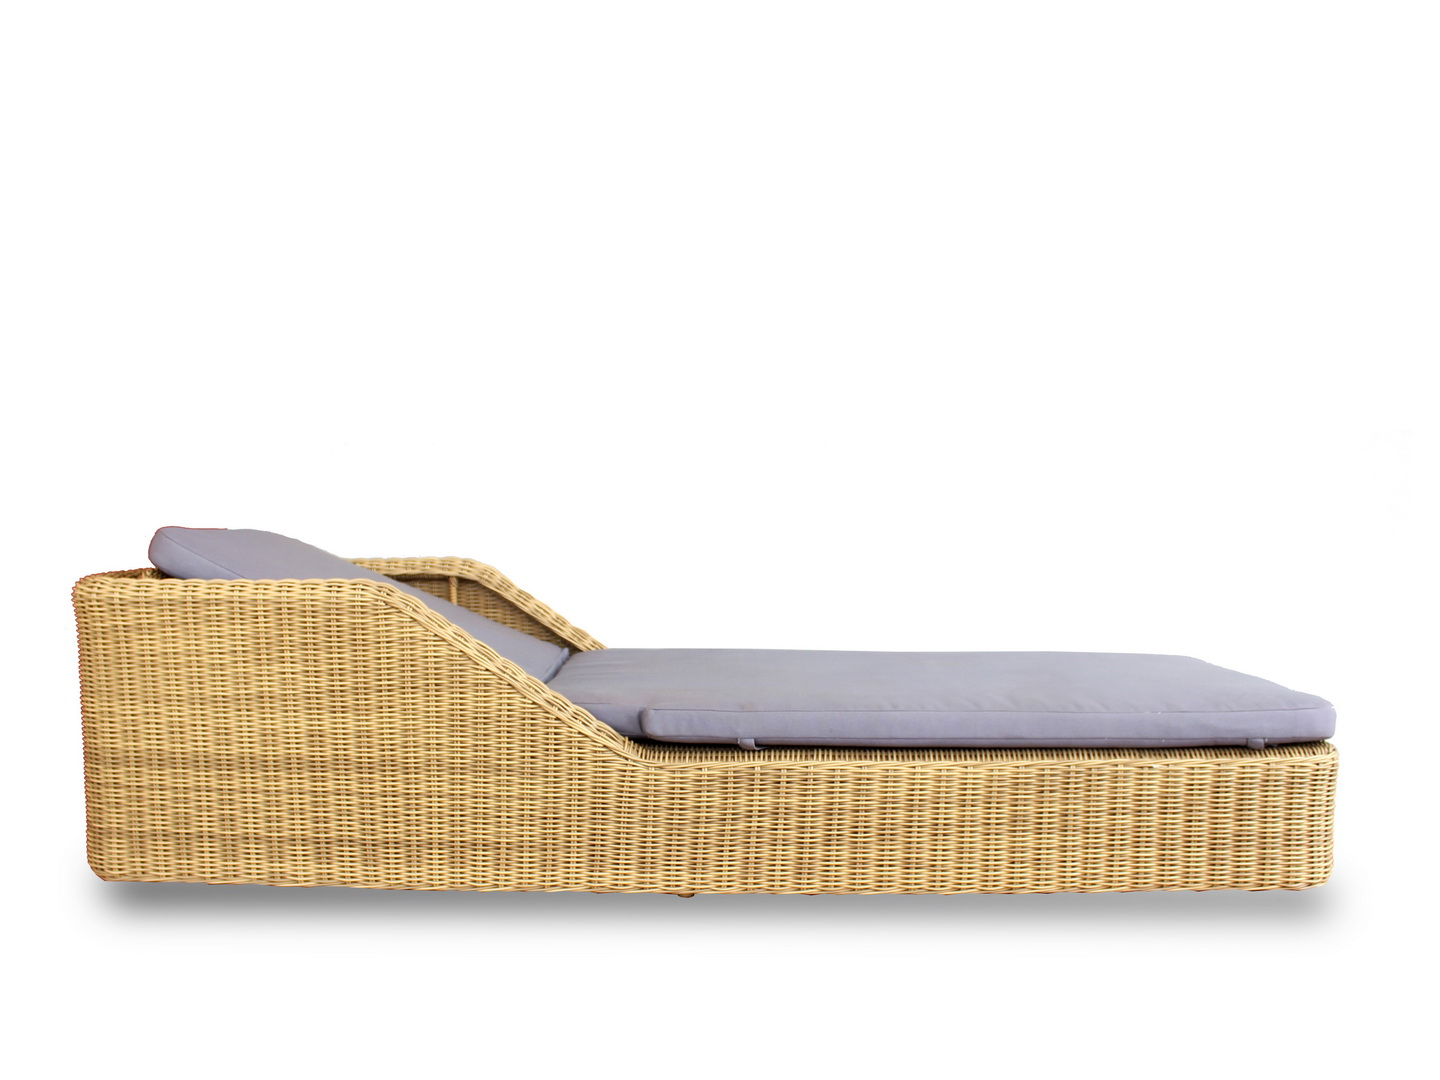 kingsford_02_sunbed_synthetic_rattan_furniture_all-weather_yuni_bali_furniture_manufacturer_exporter_indonesia